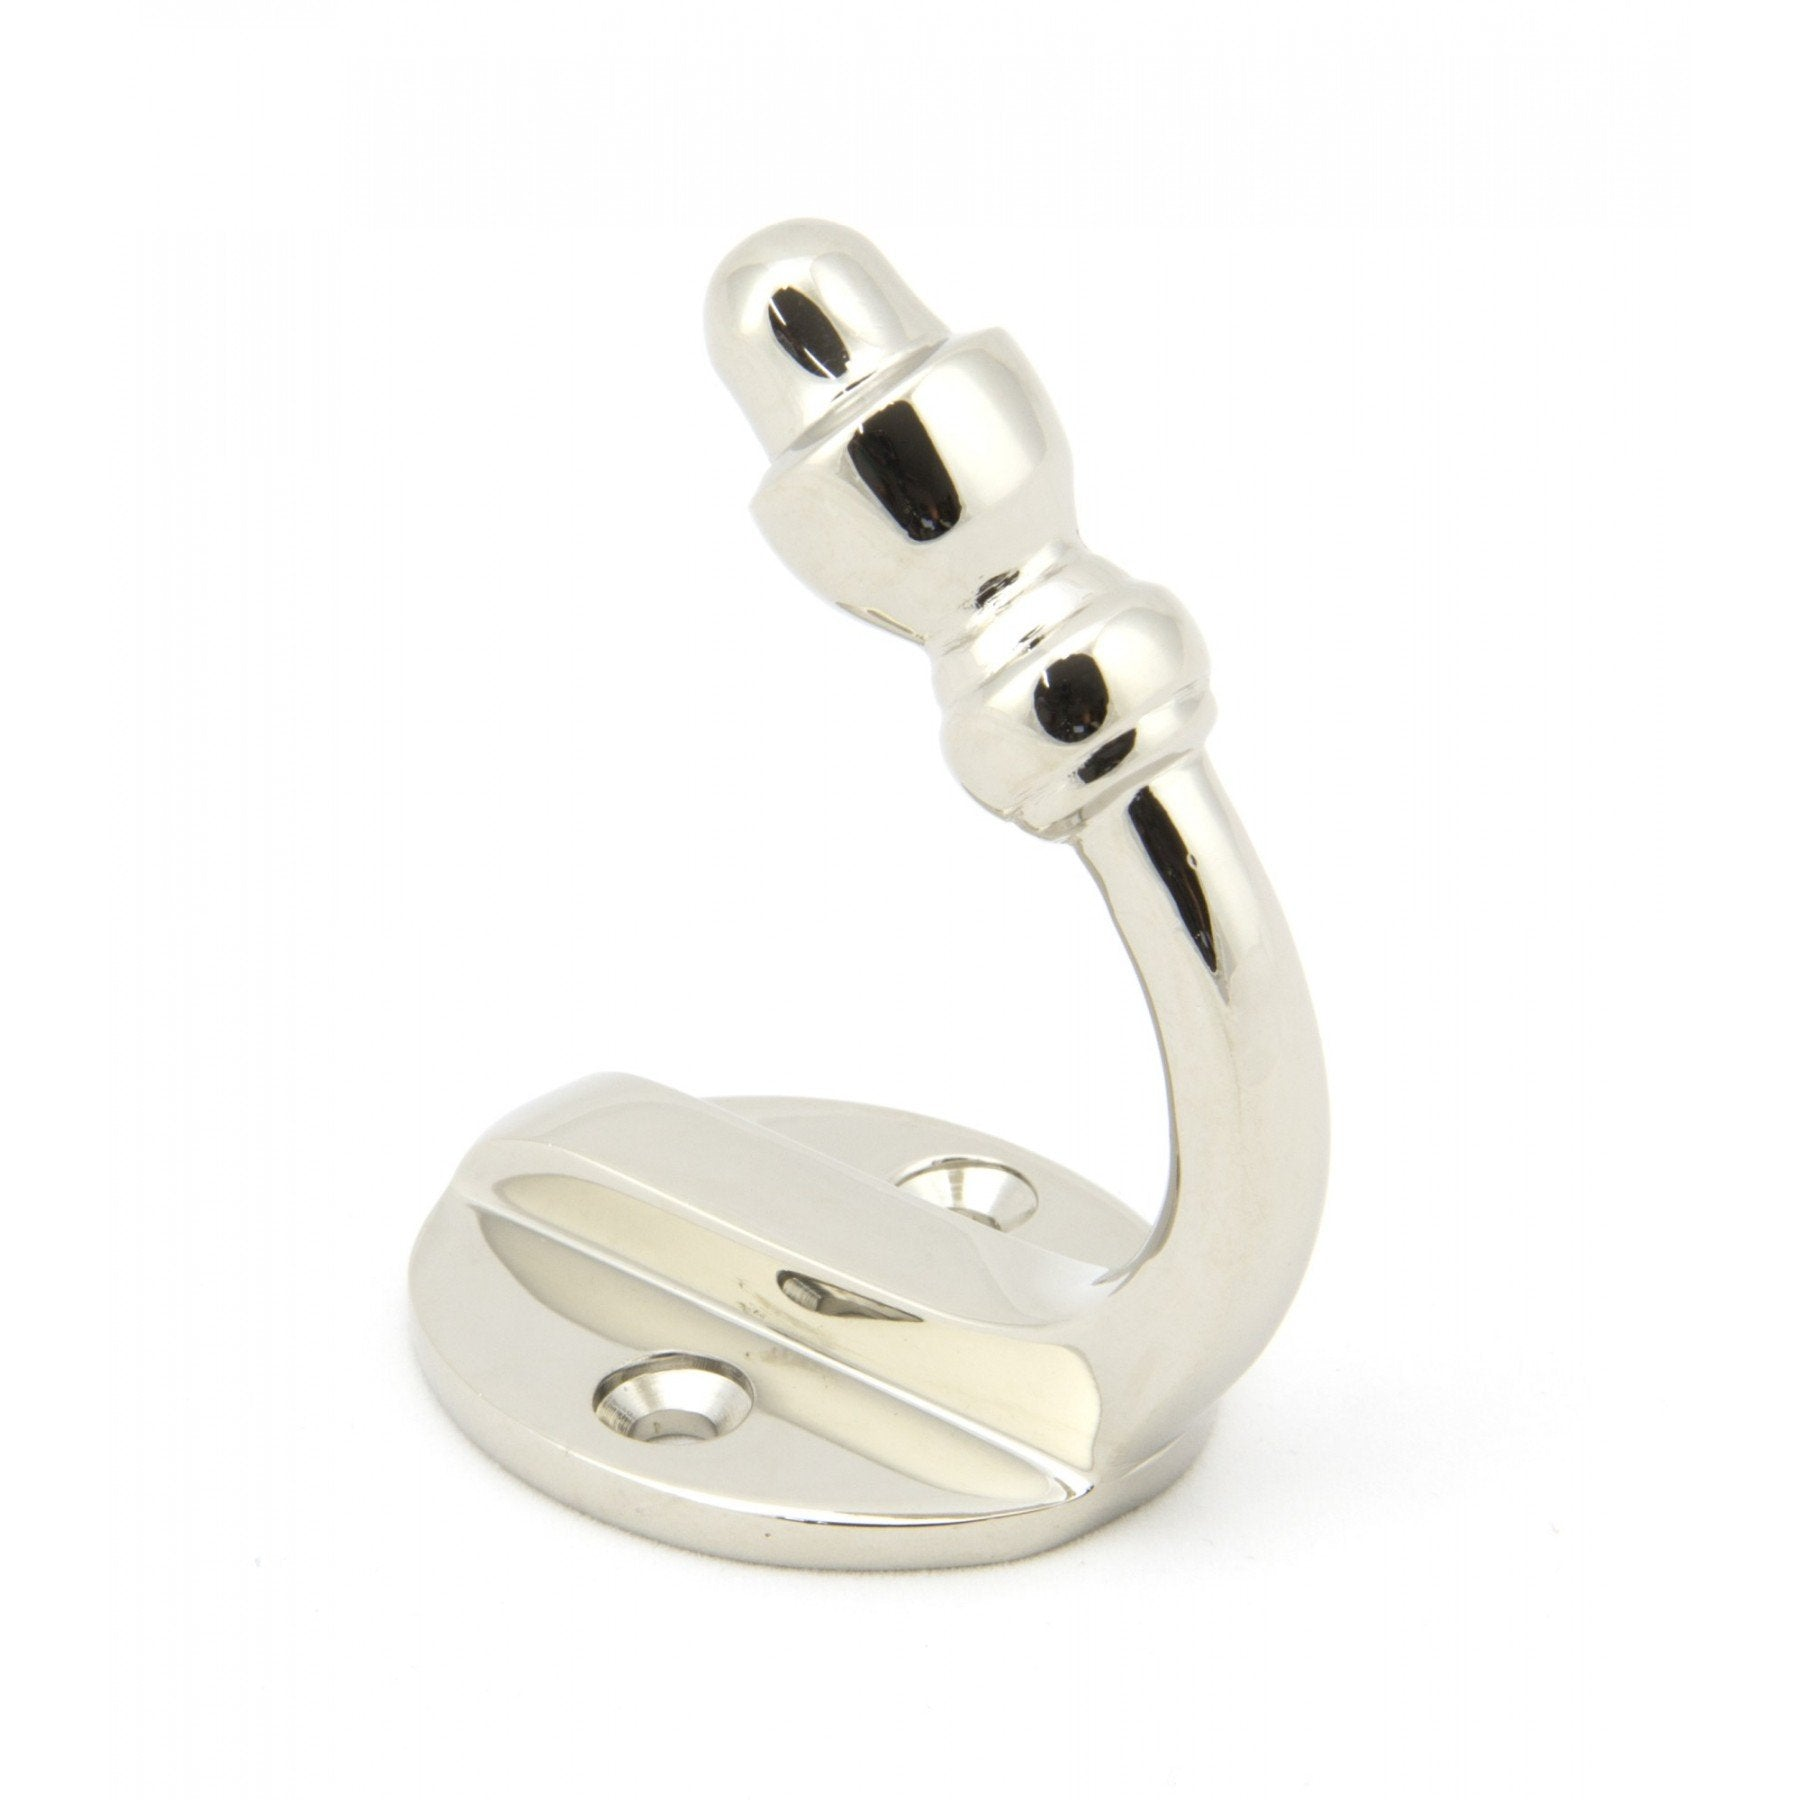 Polished Nickel Coat Hook